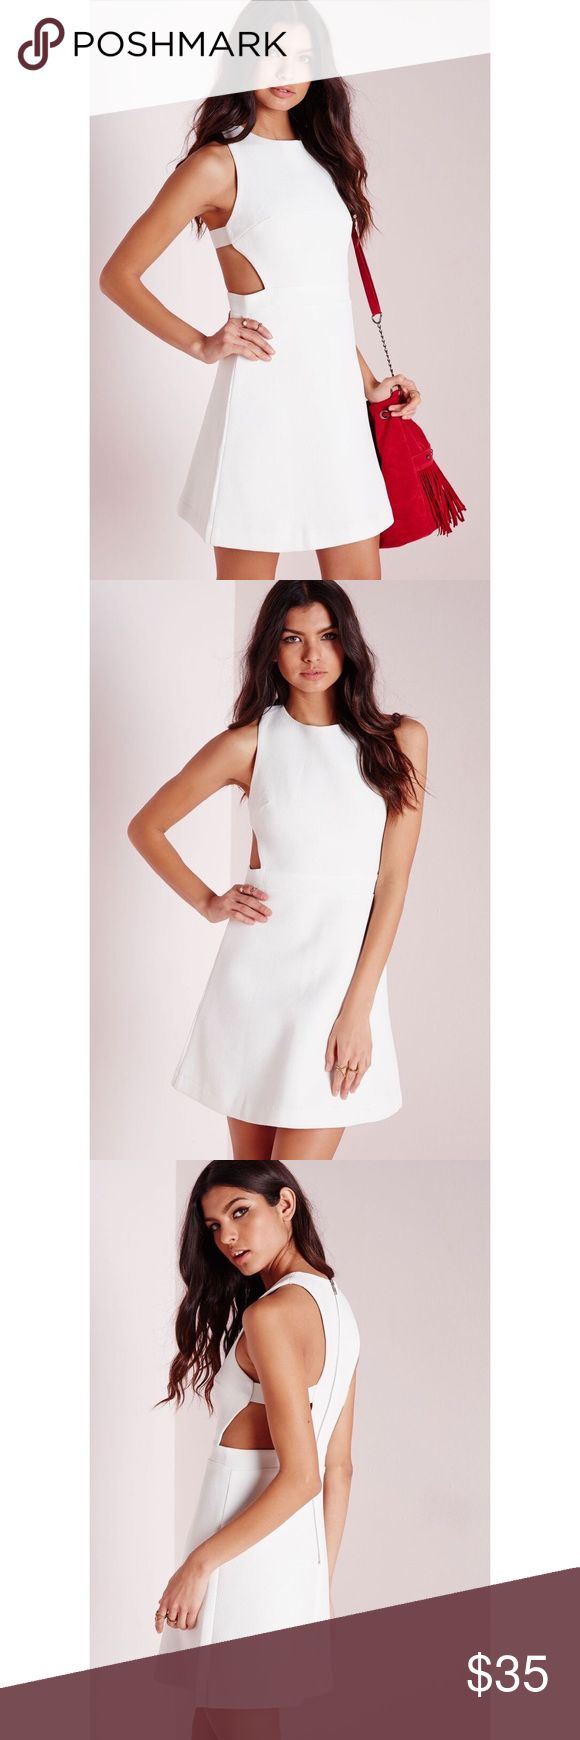 🆕 NWT Missguided Textured Neoprene Cut Out Dress Originally $51 • US 10 • Reasonable offers welcome Missguided Dresses